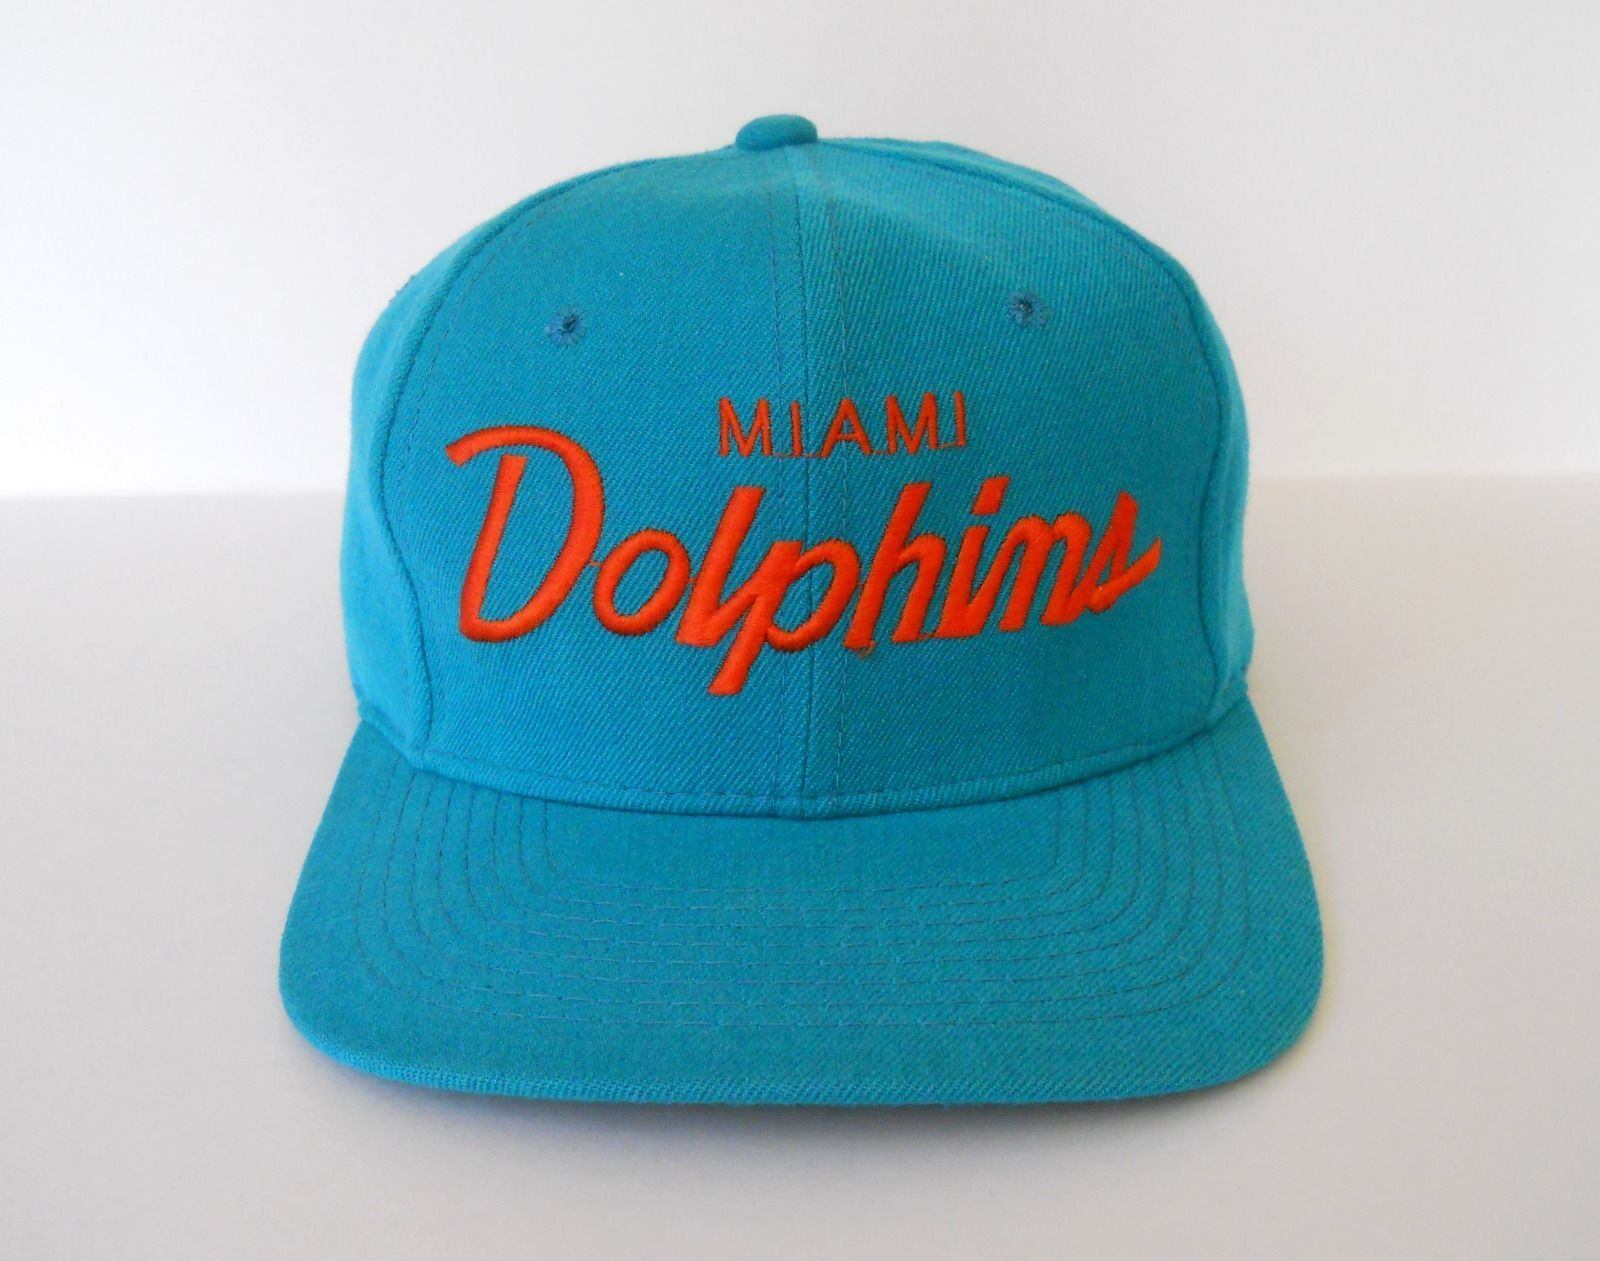 Miami Dolphins Snapback by Sports Secialties Single Line Script Pro NFL  Vintage  b236fdb9f0de